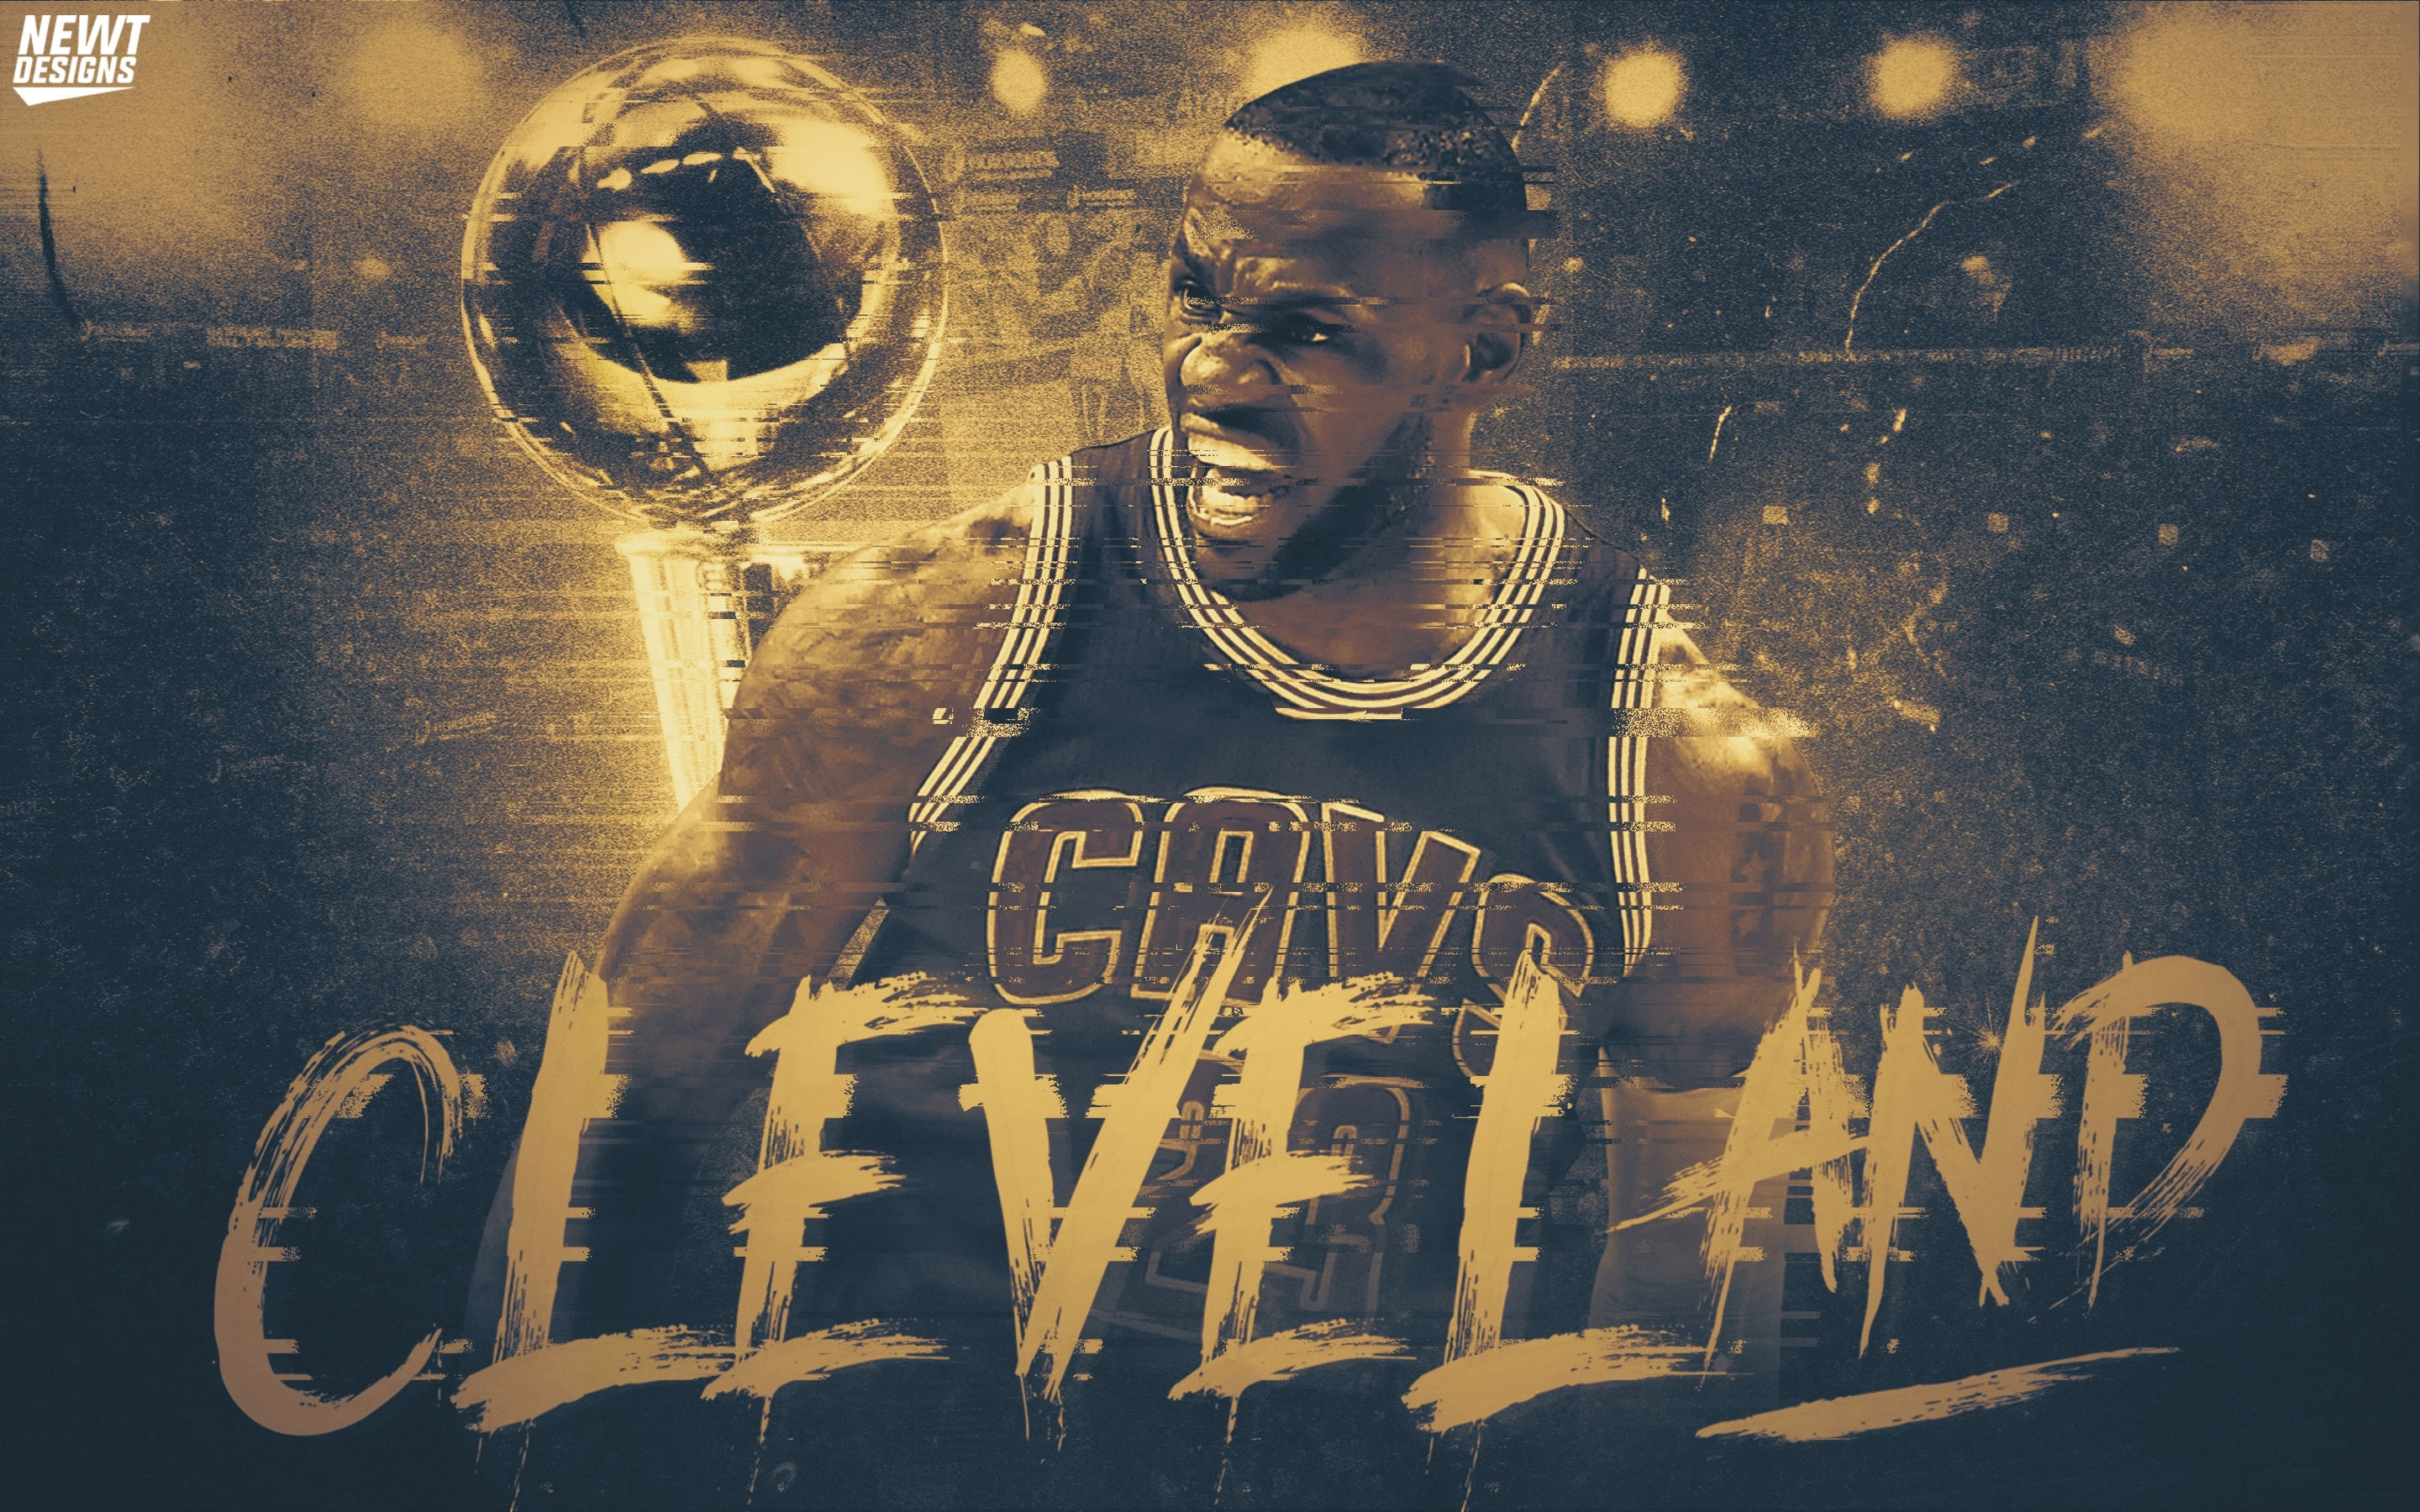 lebron james 2016 nba champion 2880×1800 wallpaper | basketball